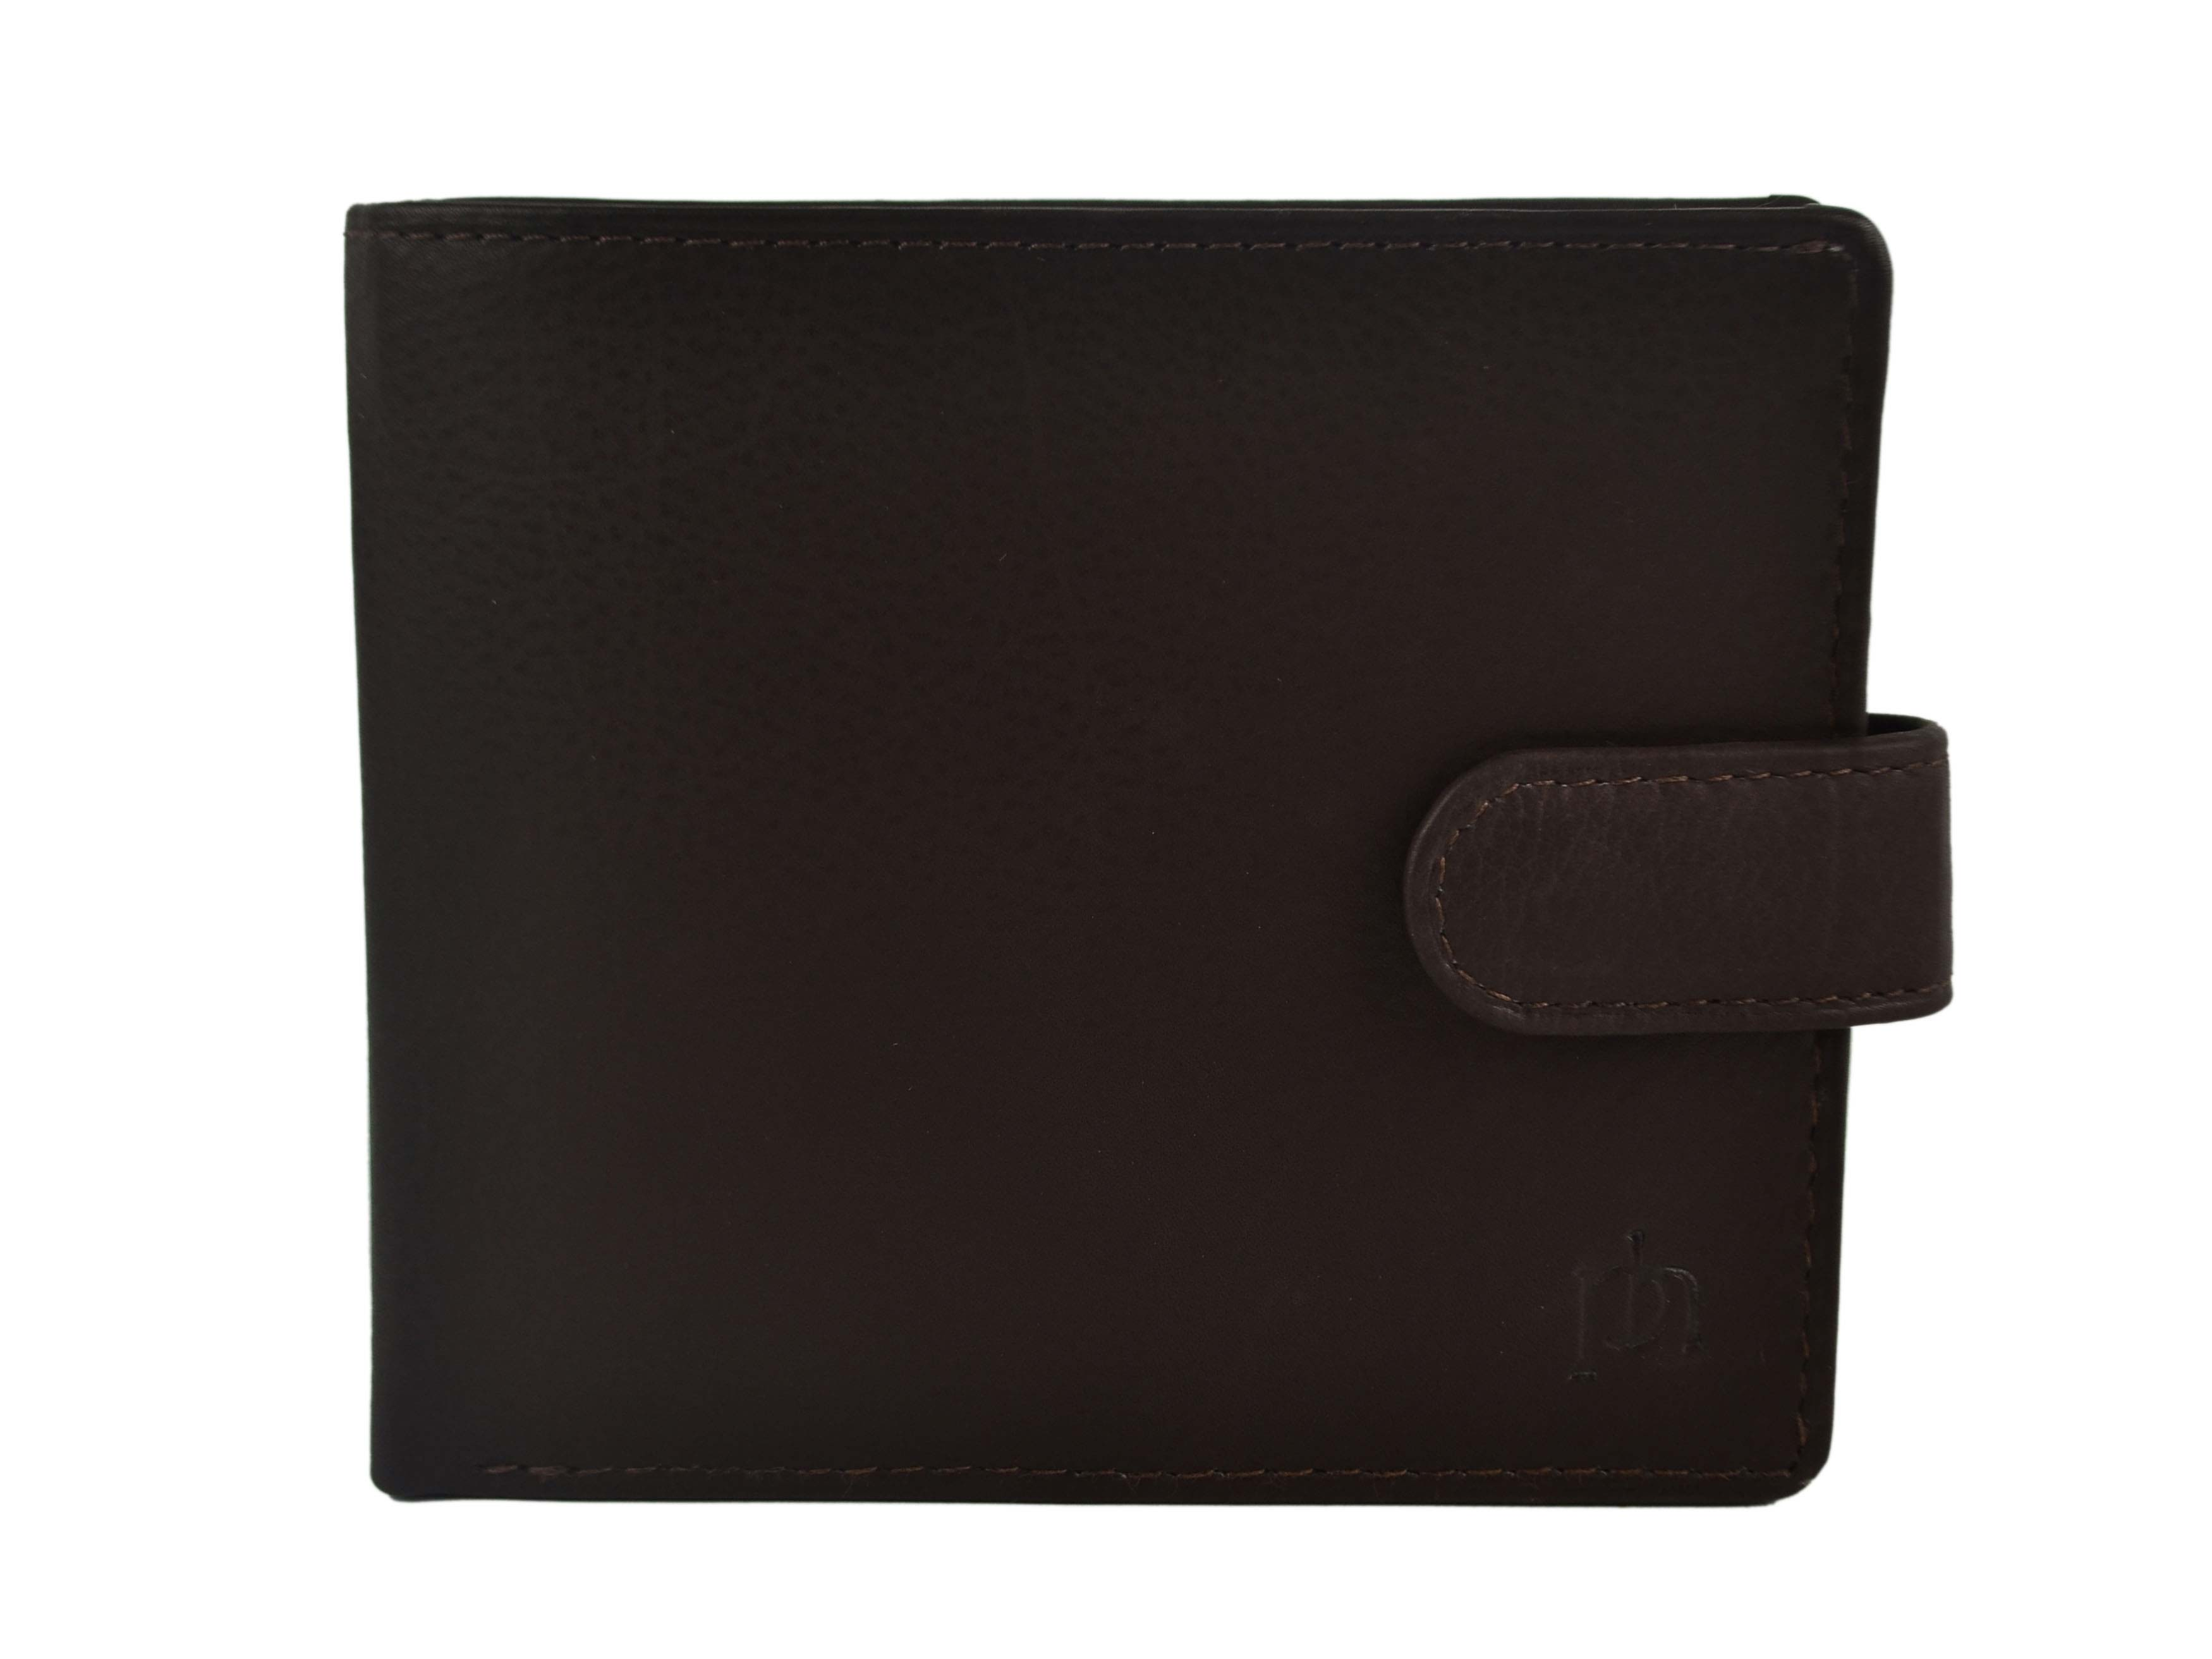 Mens-Quality-Soft-Leather-Wallet-by-Prime-Hide-Gift-Boxed-Stylish-with-Tab thumbnail 9